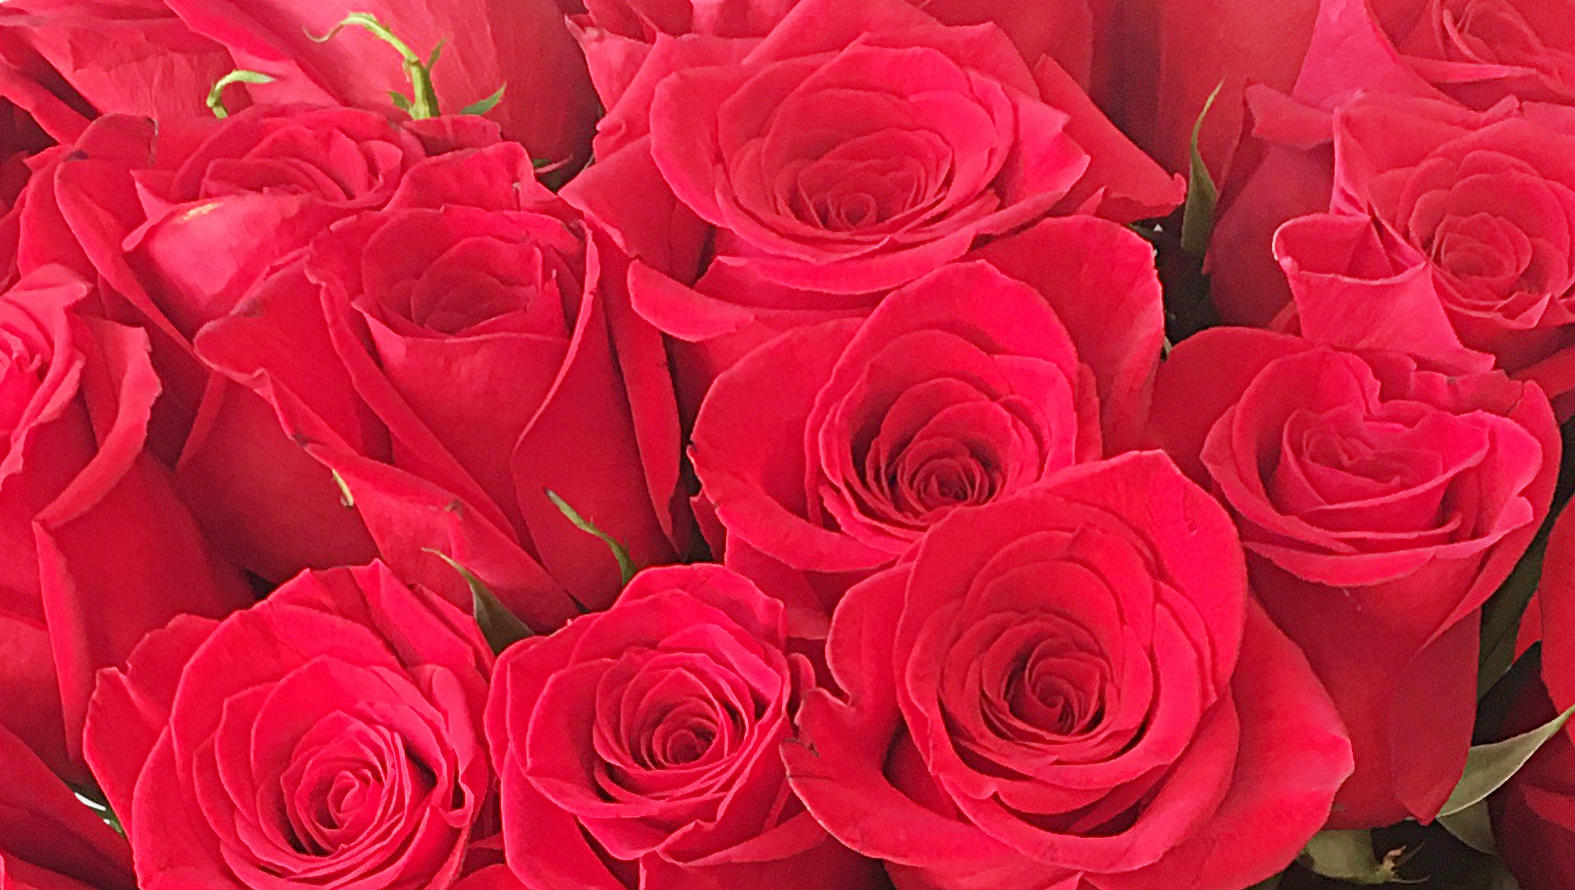 50-red-roses-bouquet-flower-station-close-up.jpg